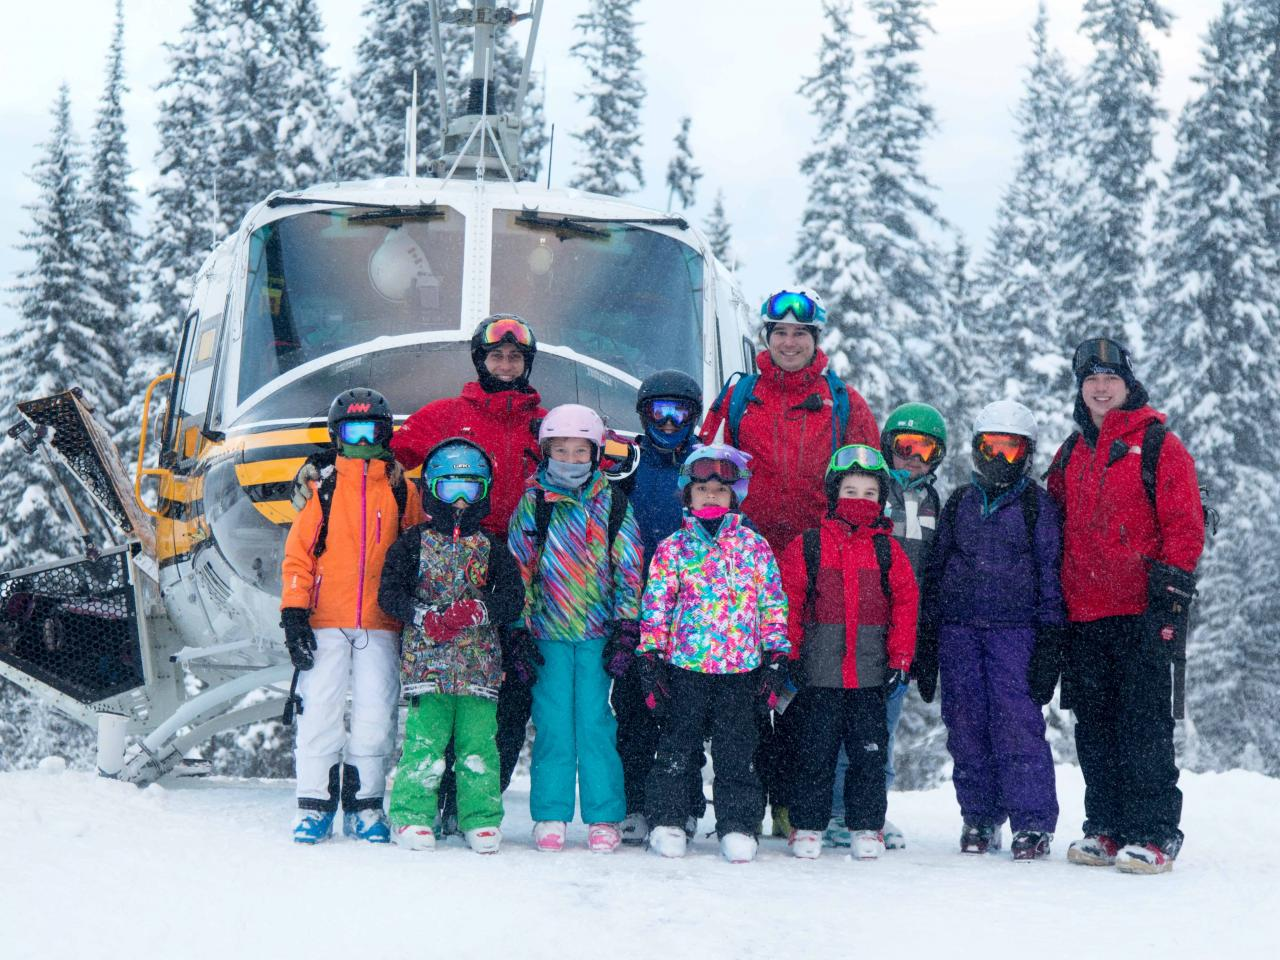 Mike Wiegele heli-ski resort offers children ski camps for Christmas & Easter break